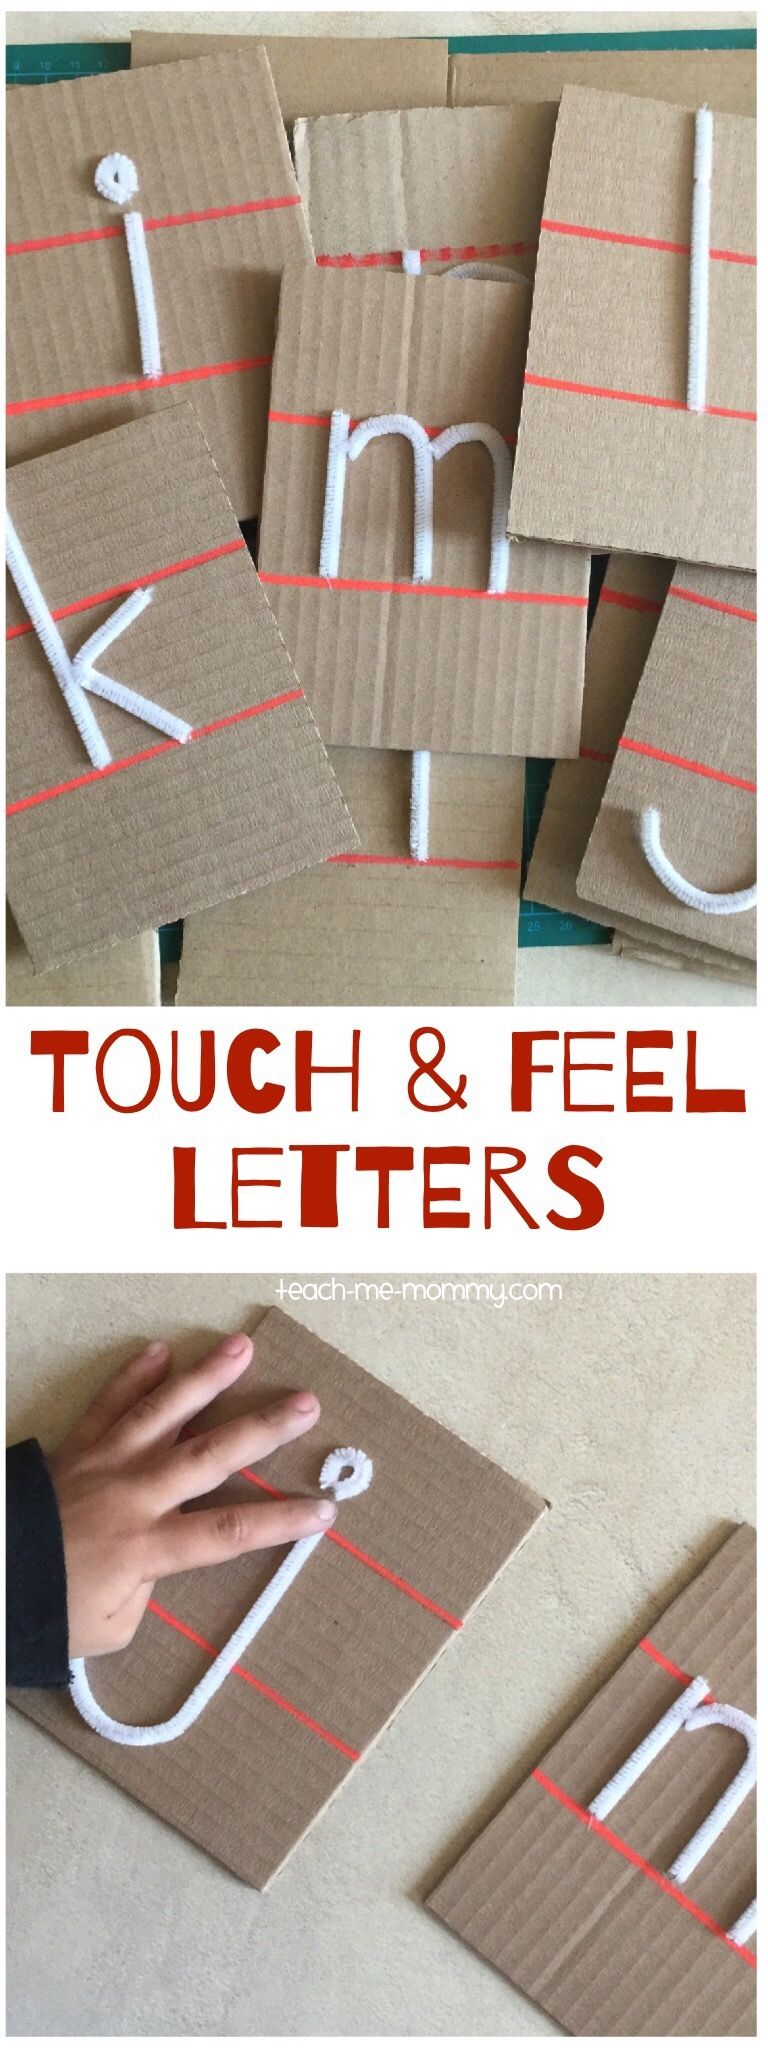 Touch & Feel Letters | Free printable, Template and Abc activities